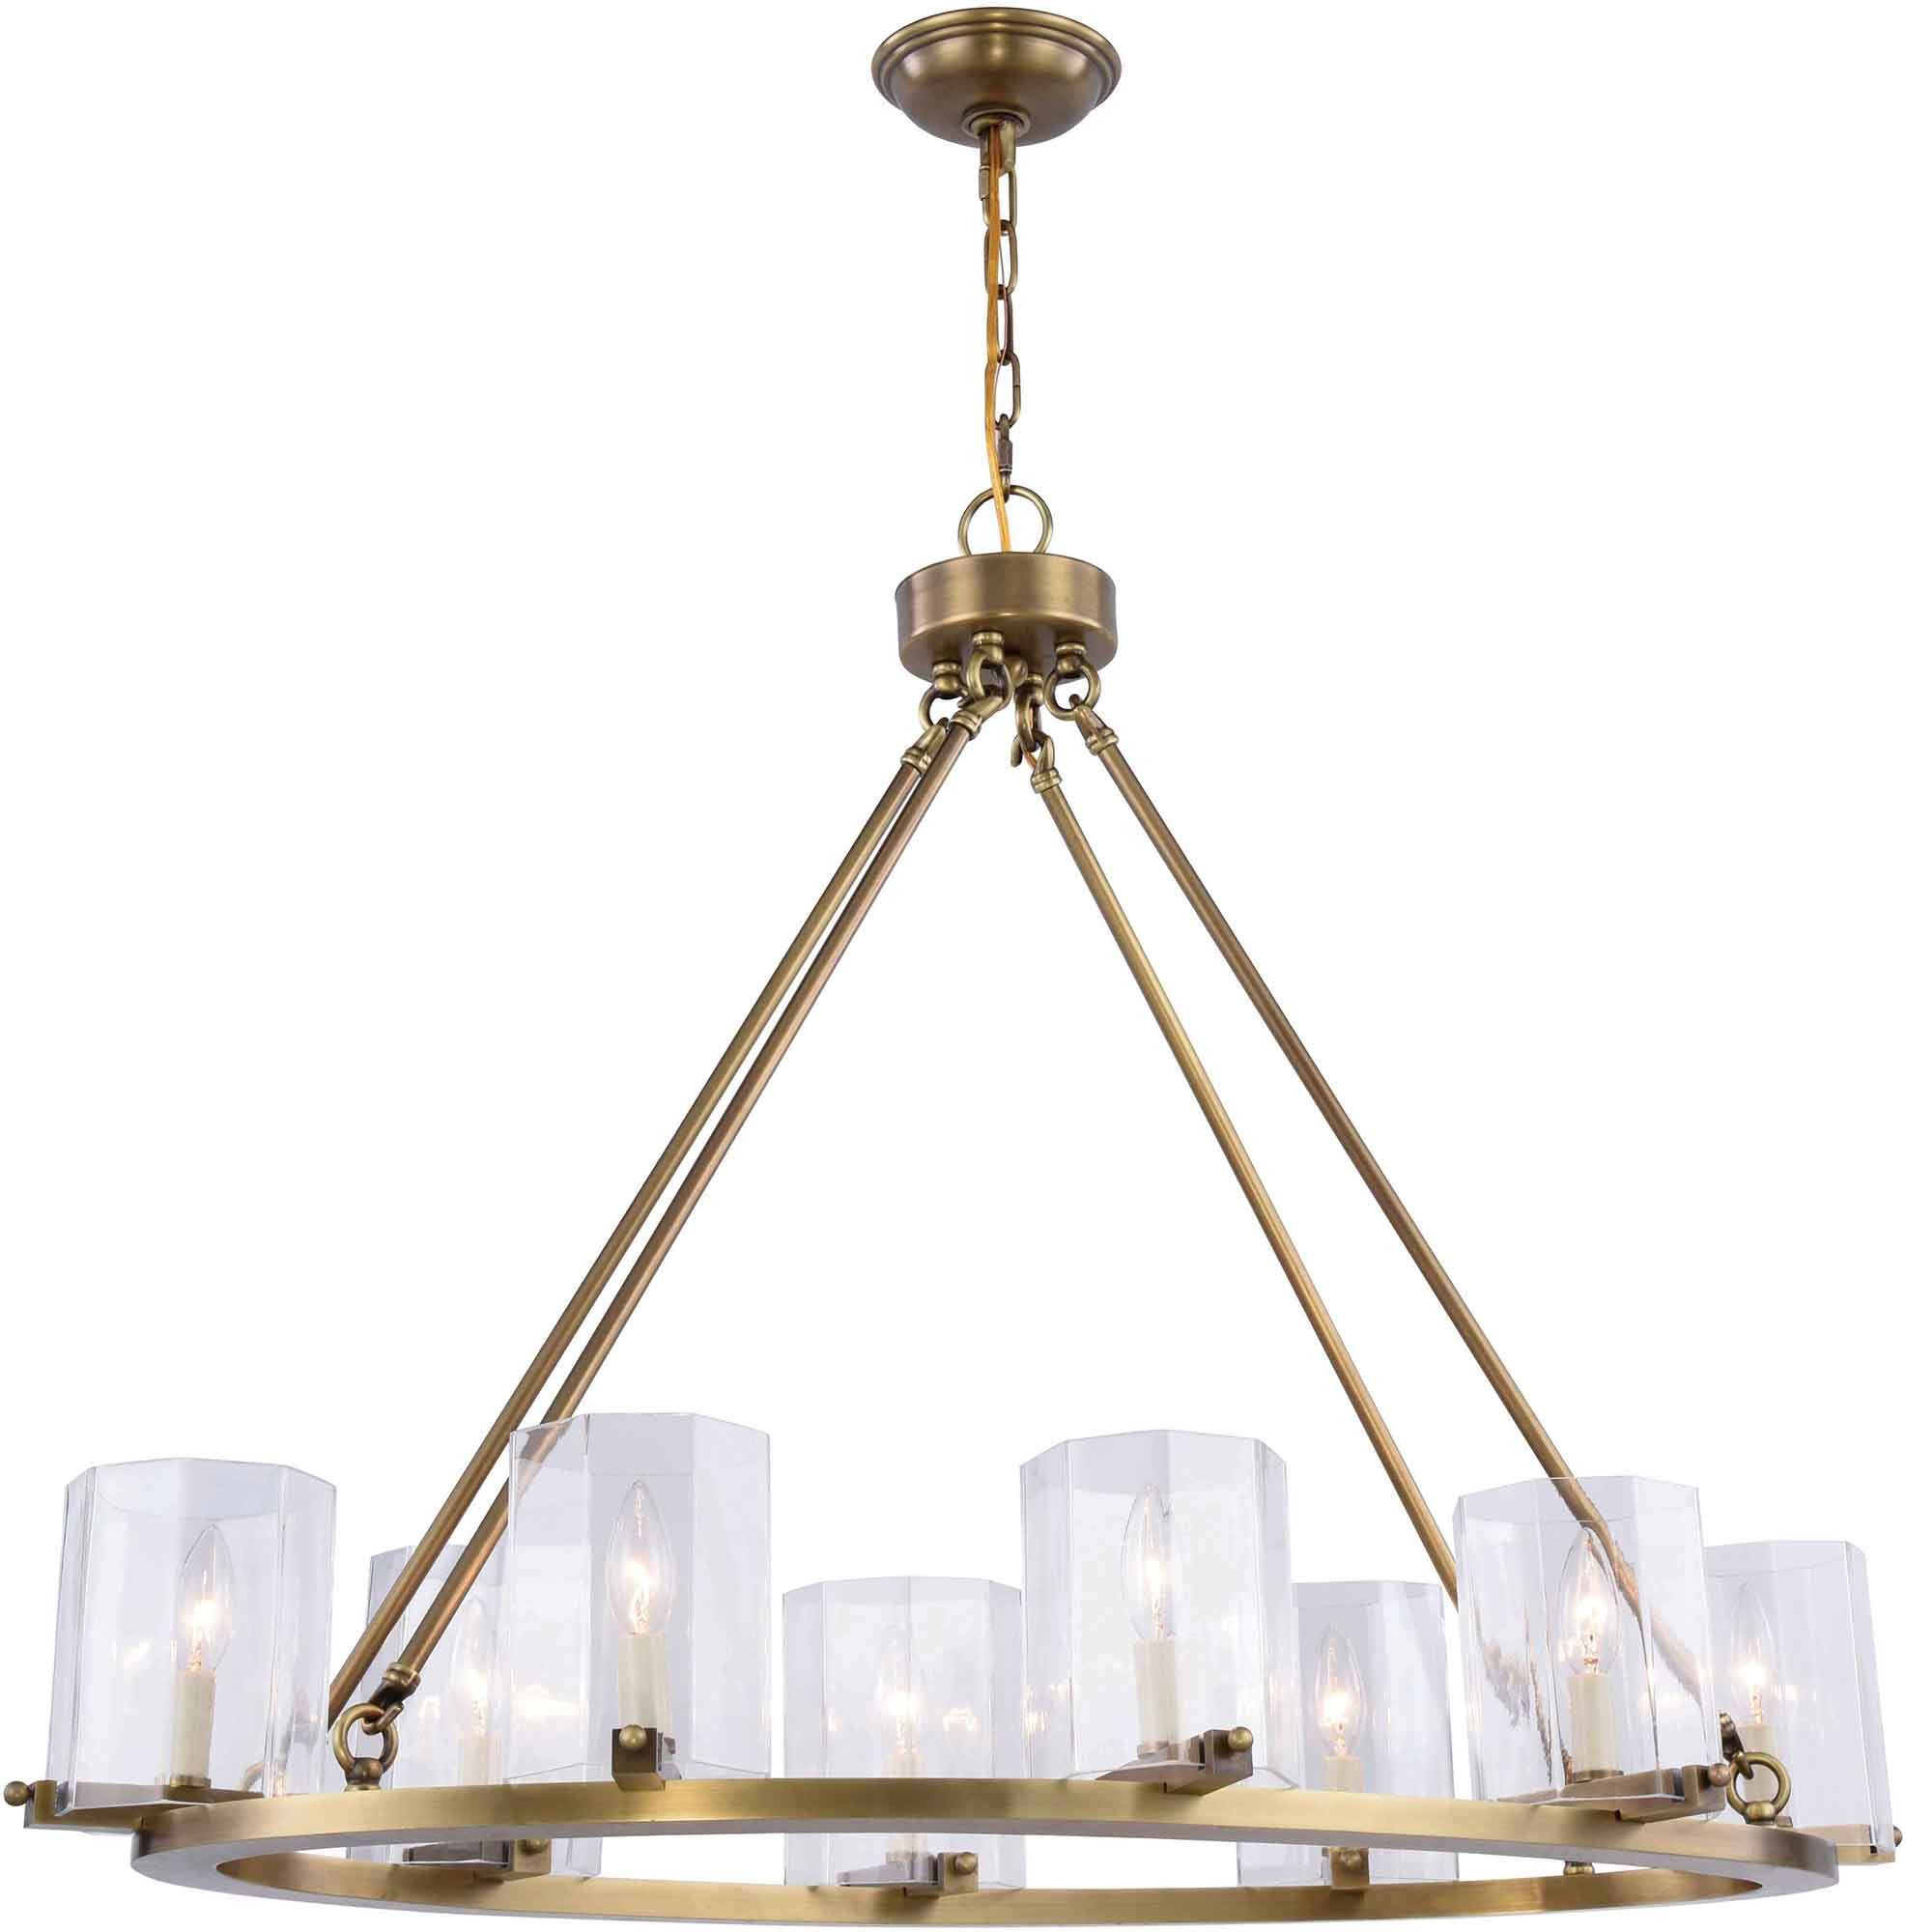 Monterey 8 light chandelier burnished brass finish products monterey 8 light chandelier burnished brass finish arubaitofo Choice Image